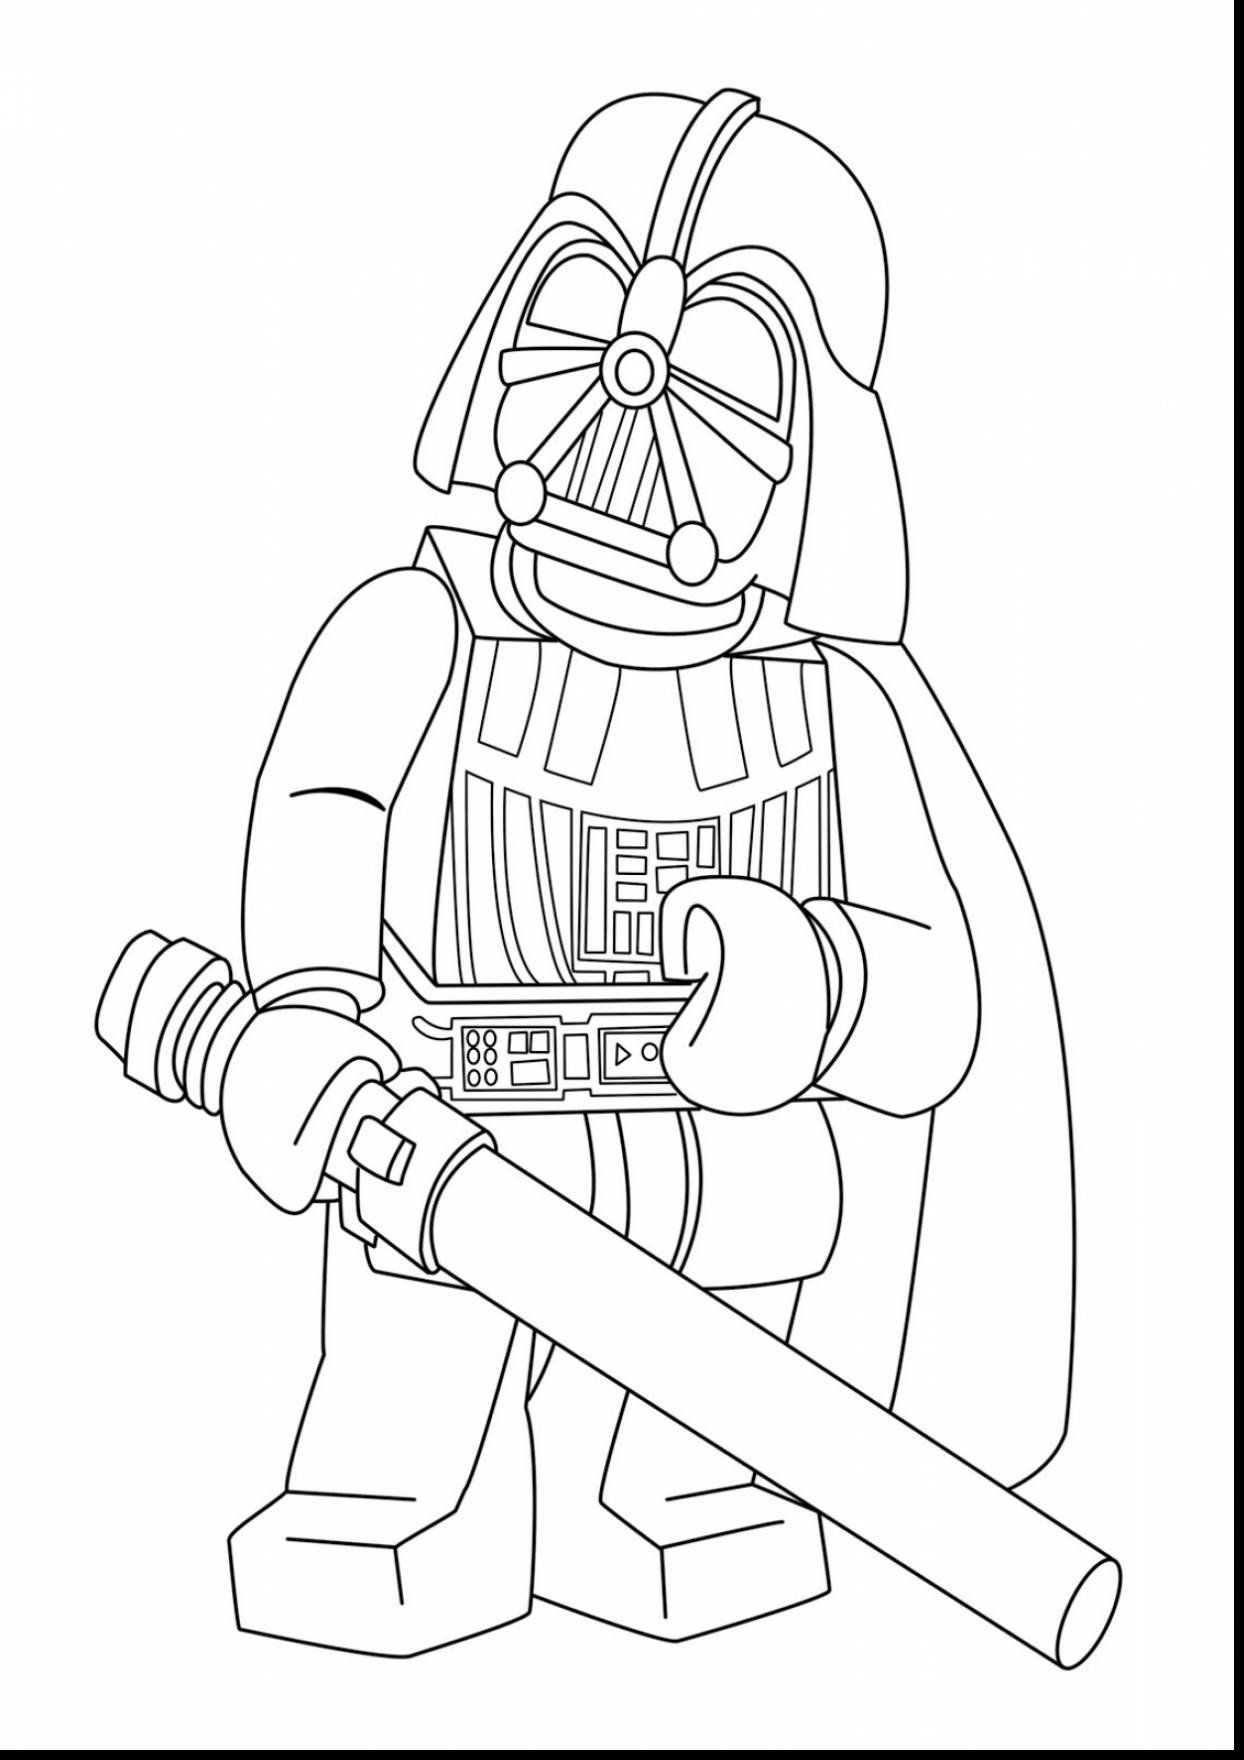 Lego City Coloring Pages Inspirational Coloring Pages Coloring Lego Star Pages Clone Wars To Star Wars Coloring Sheet Lego Coloring Pages Star Wars Colors